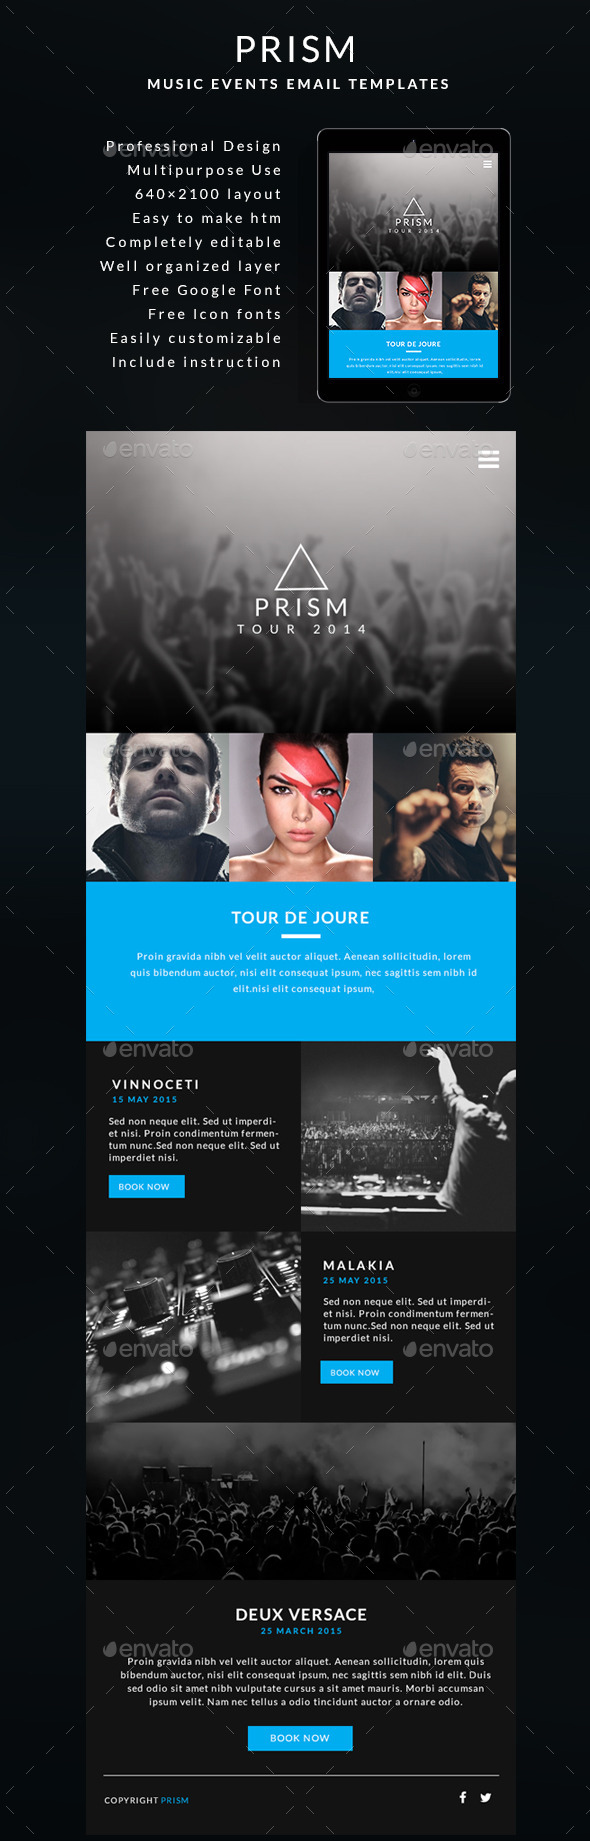 Music Events Email Template - PRISM